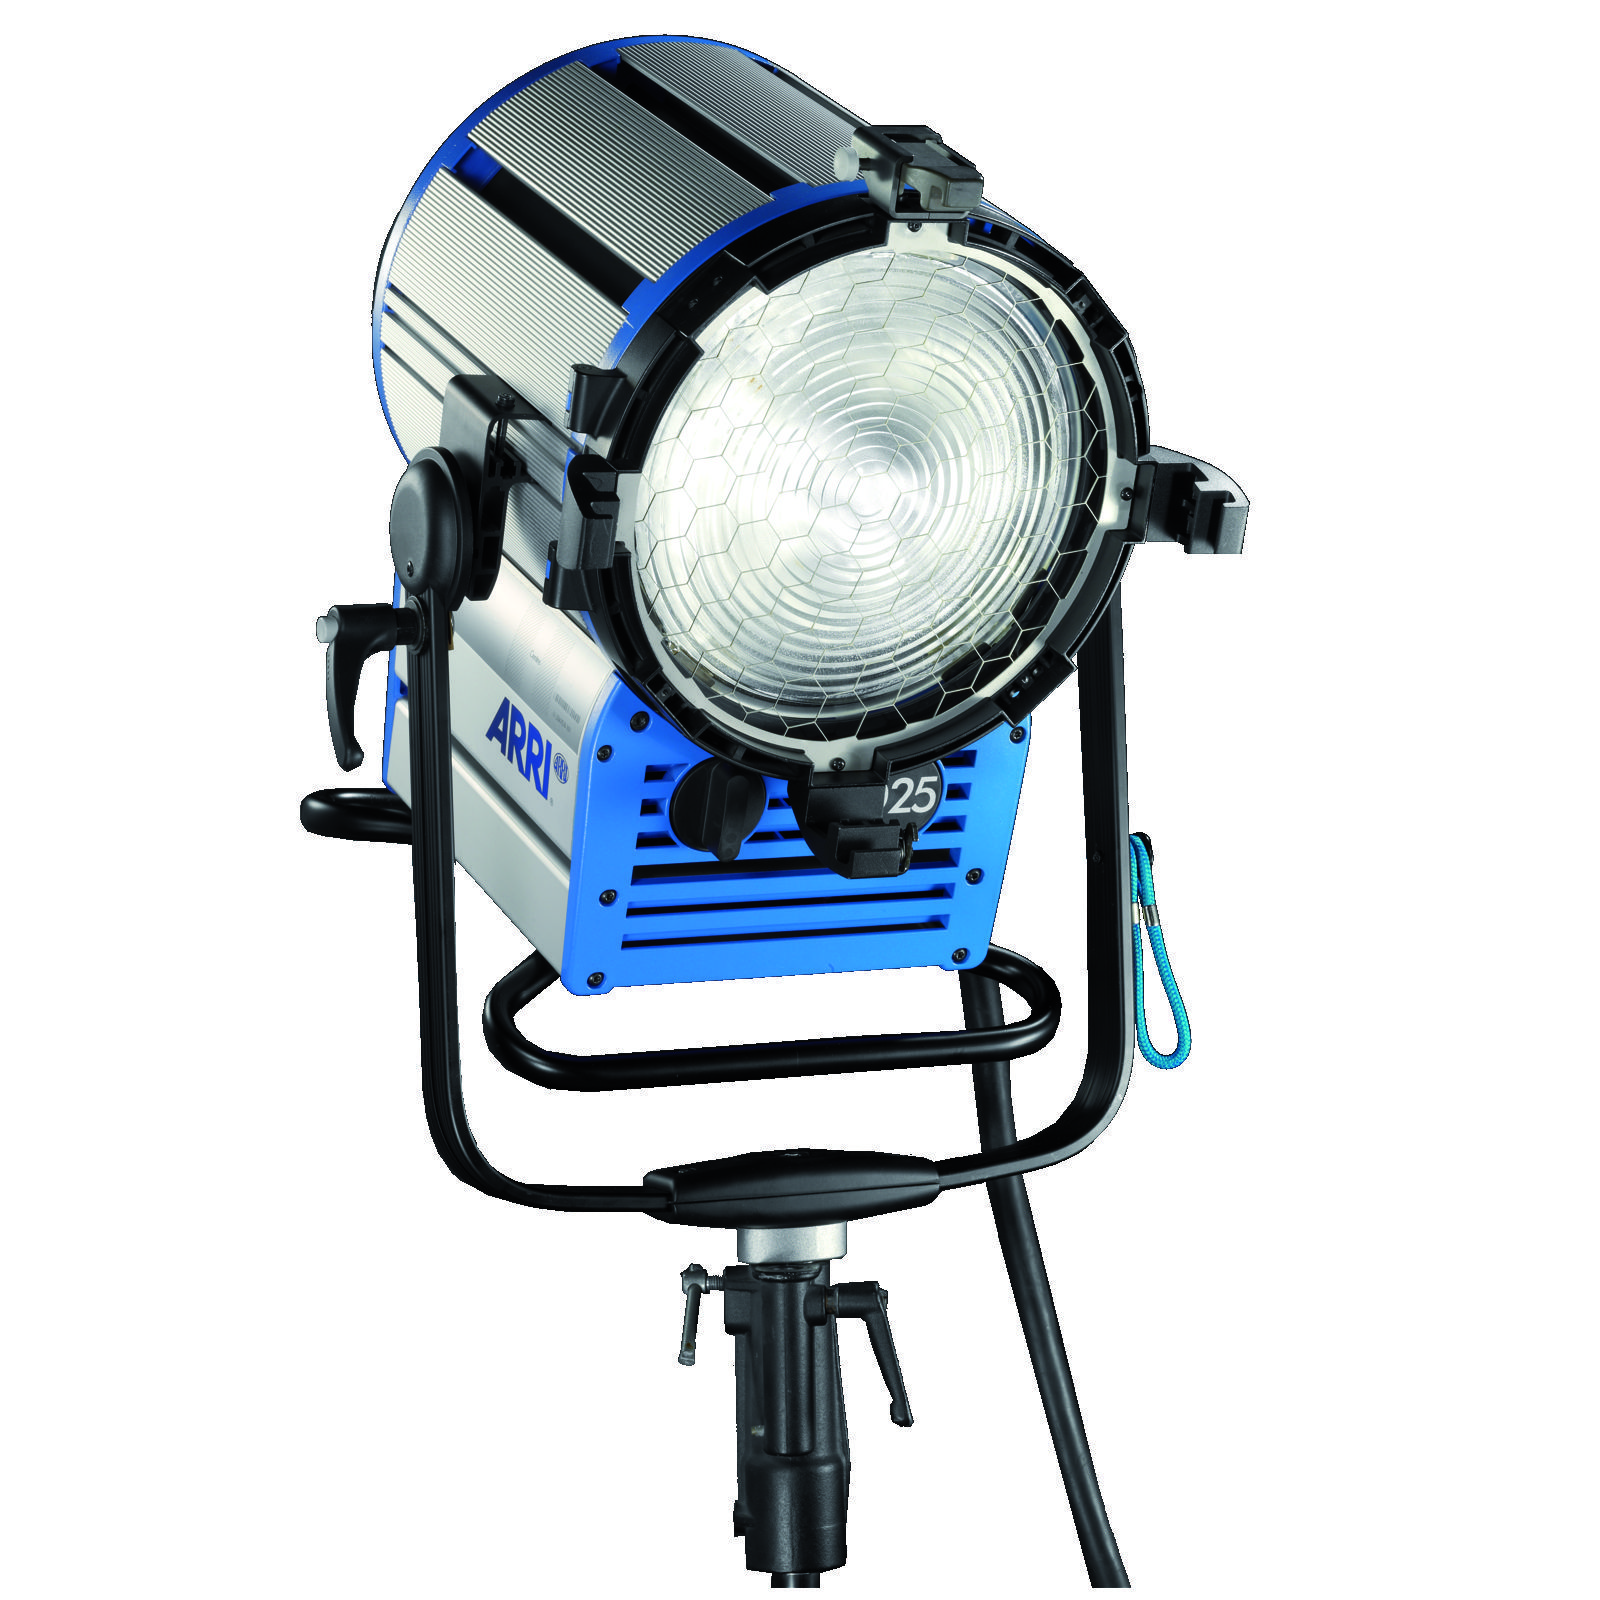 Прибор ARRI TRUE BLUE D25 L1.33675.B (MAN, black, VEAM)